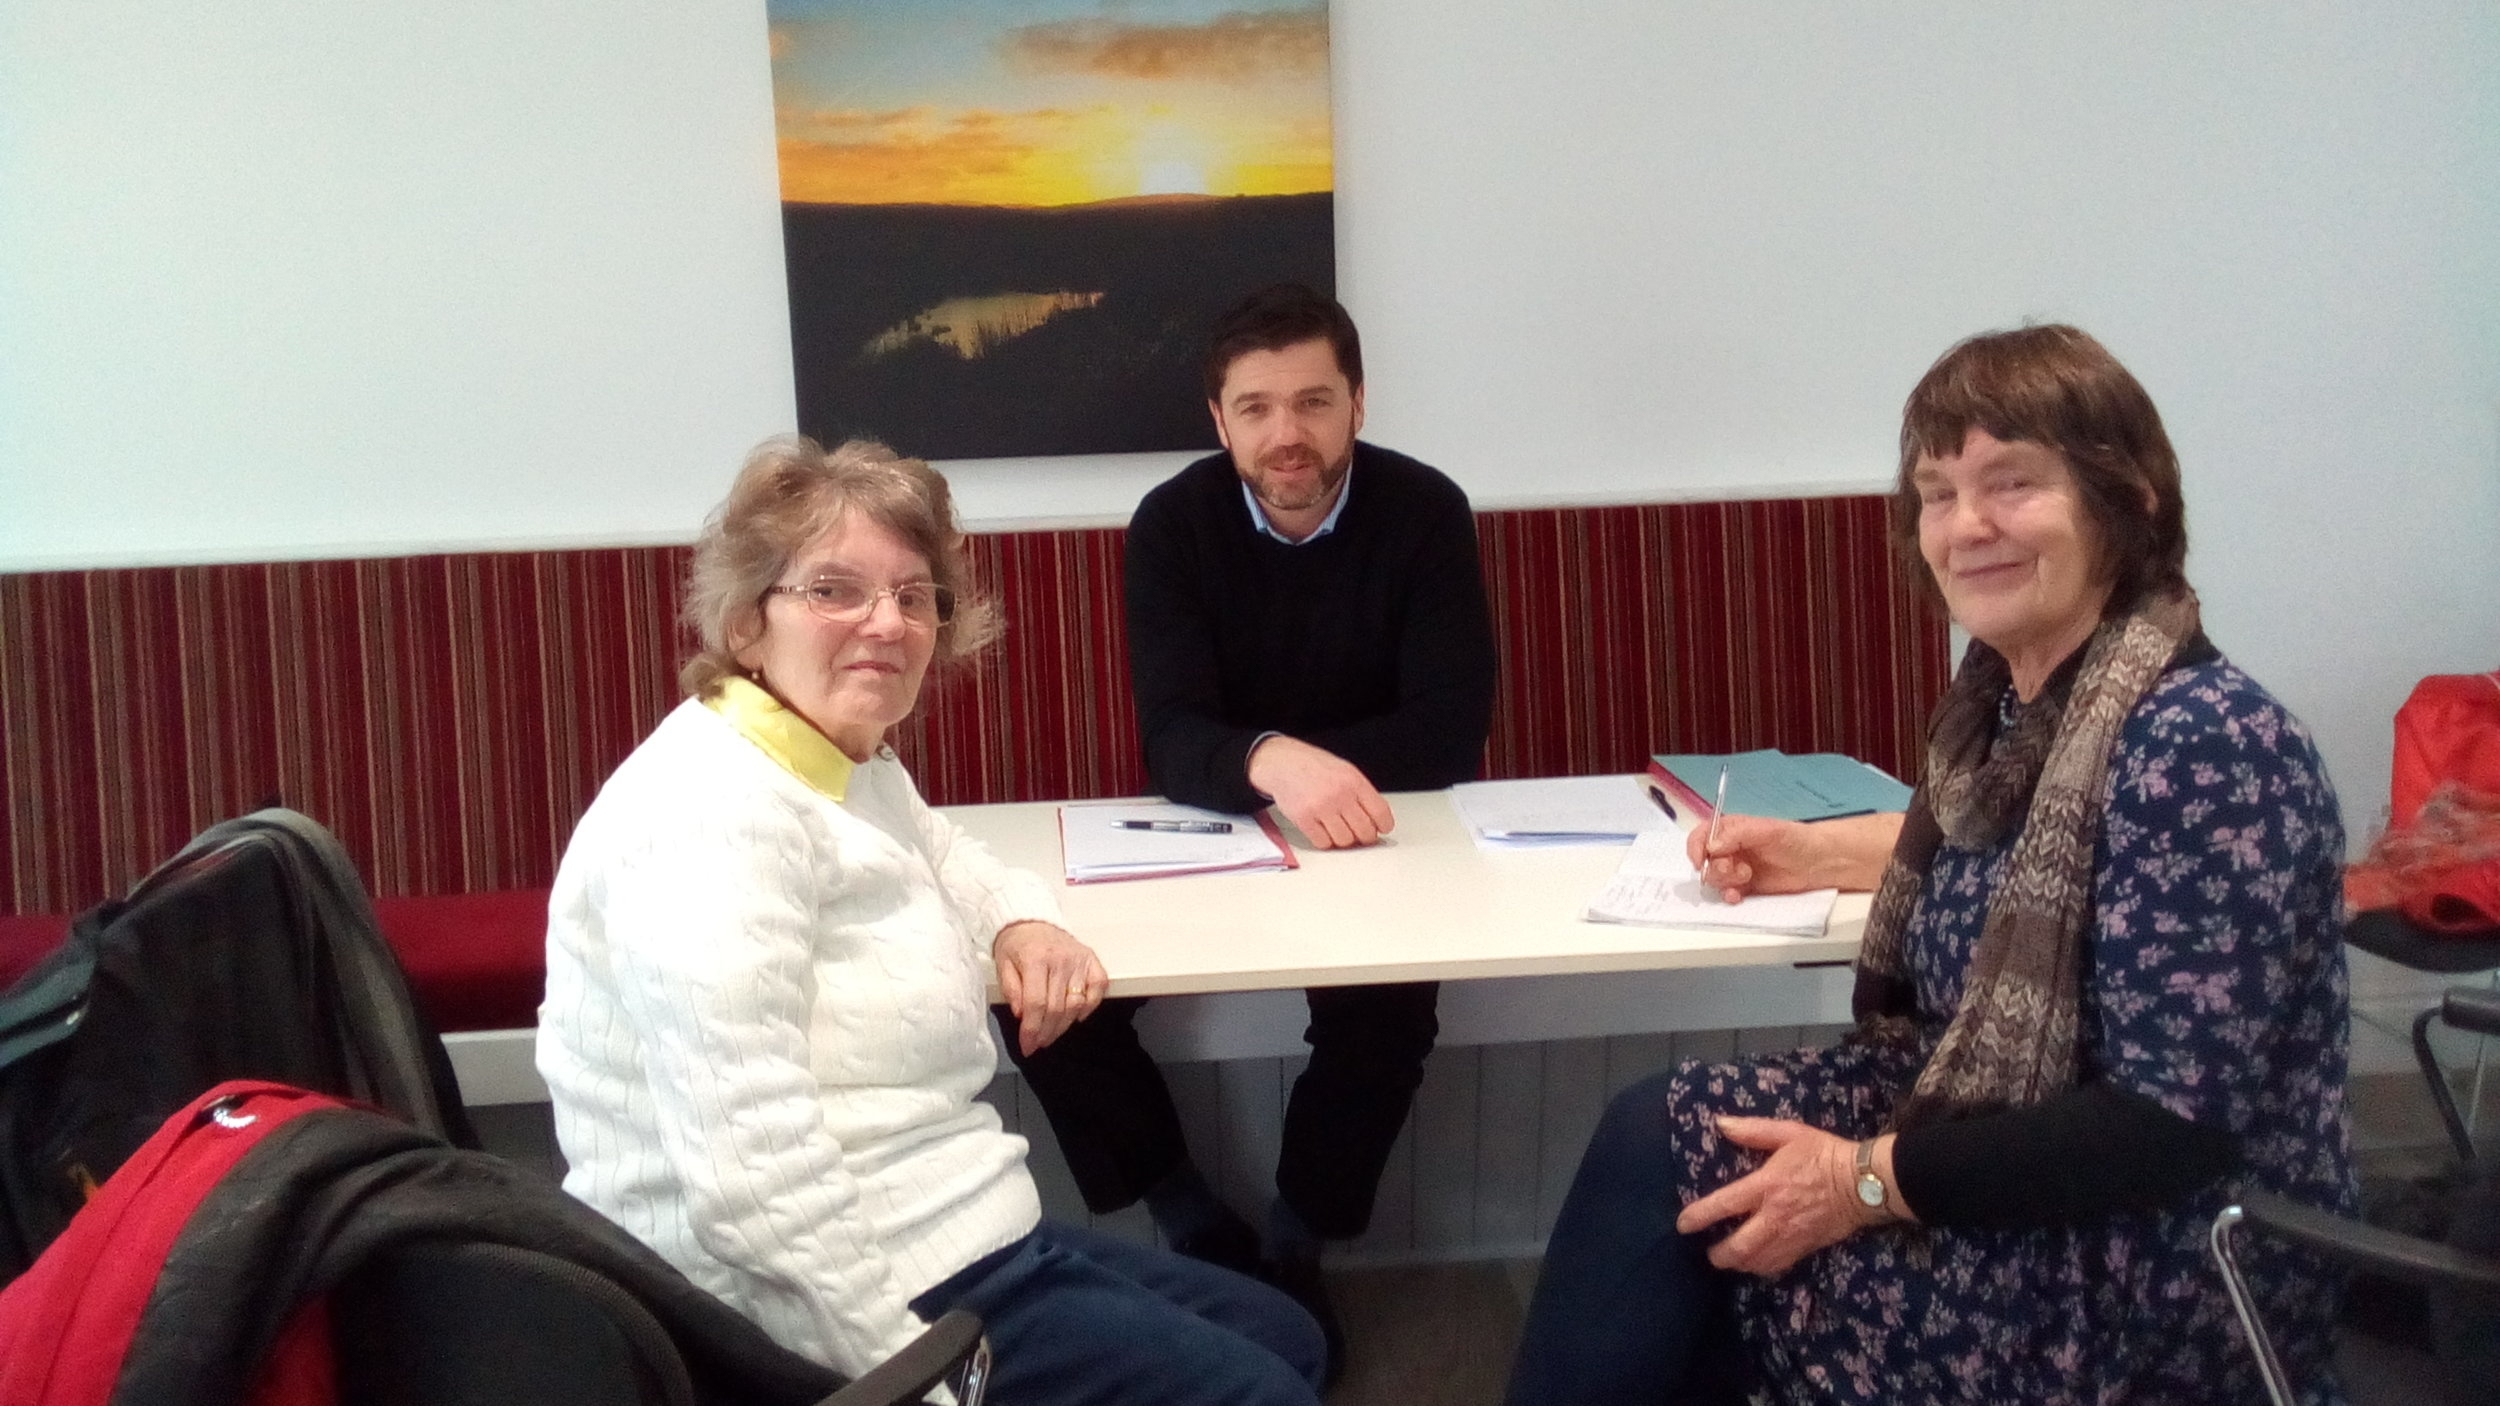 Stephen Crabb, Conservative MP for Preseli Pembrokeshire met with Vicky and Lisa in January